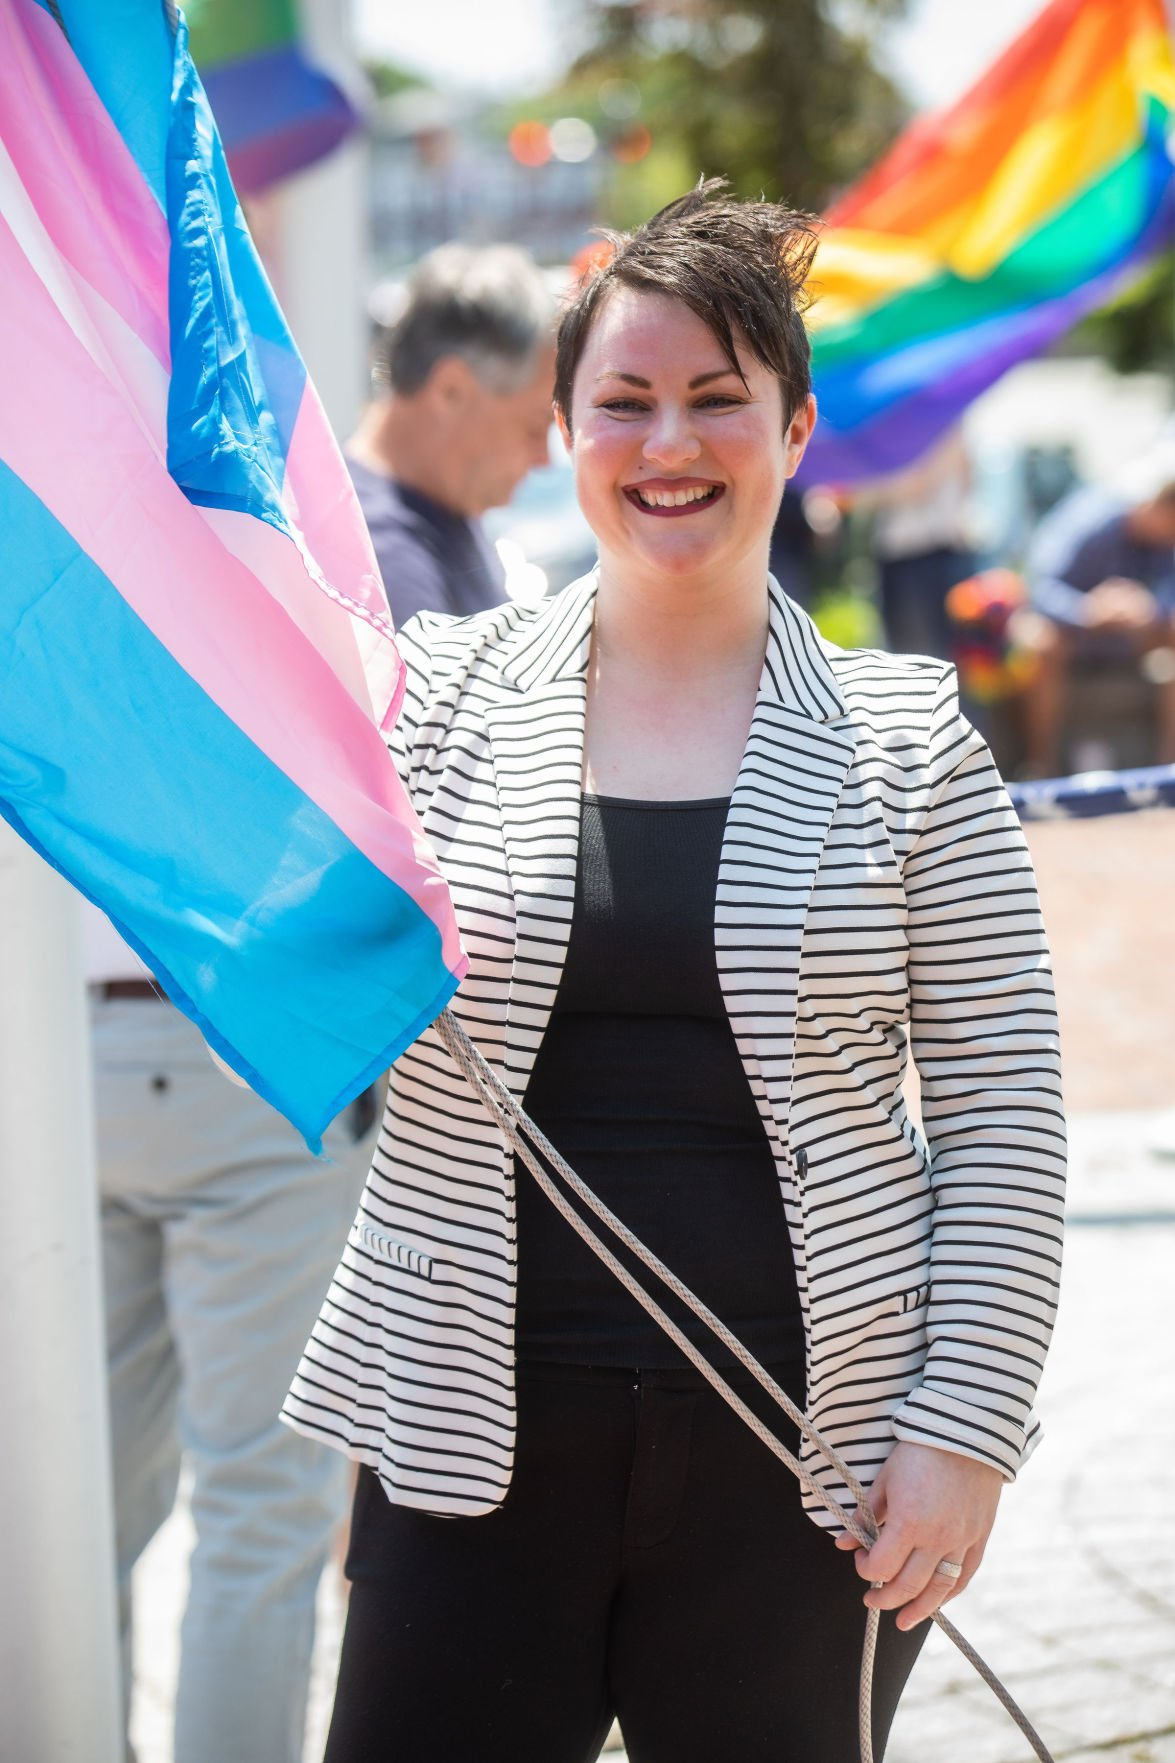 Rainbow, transgender pride flags fly in downtown Salem